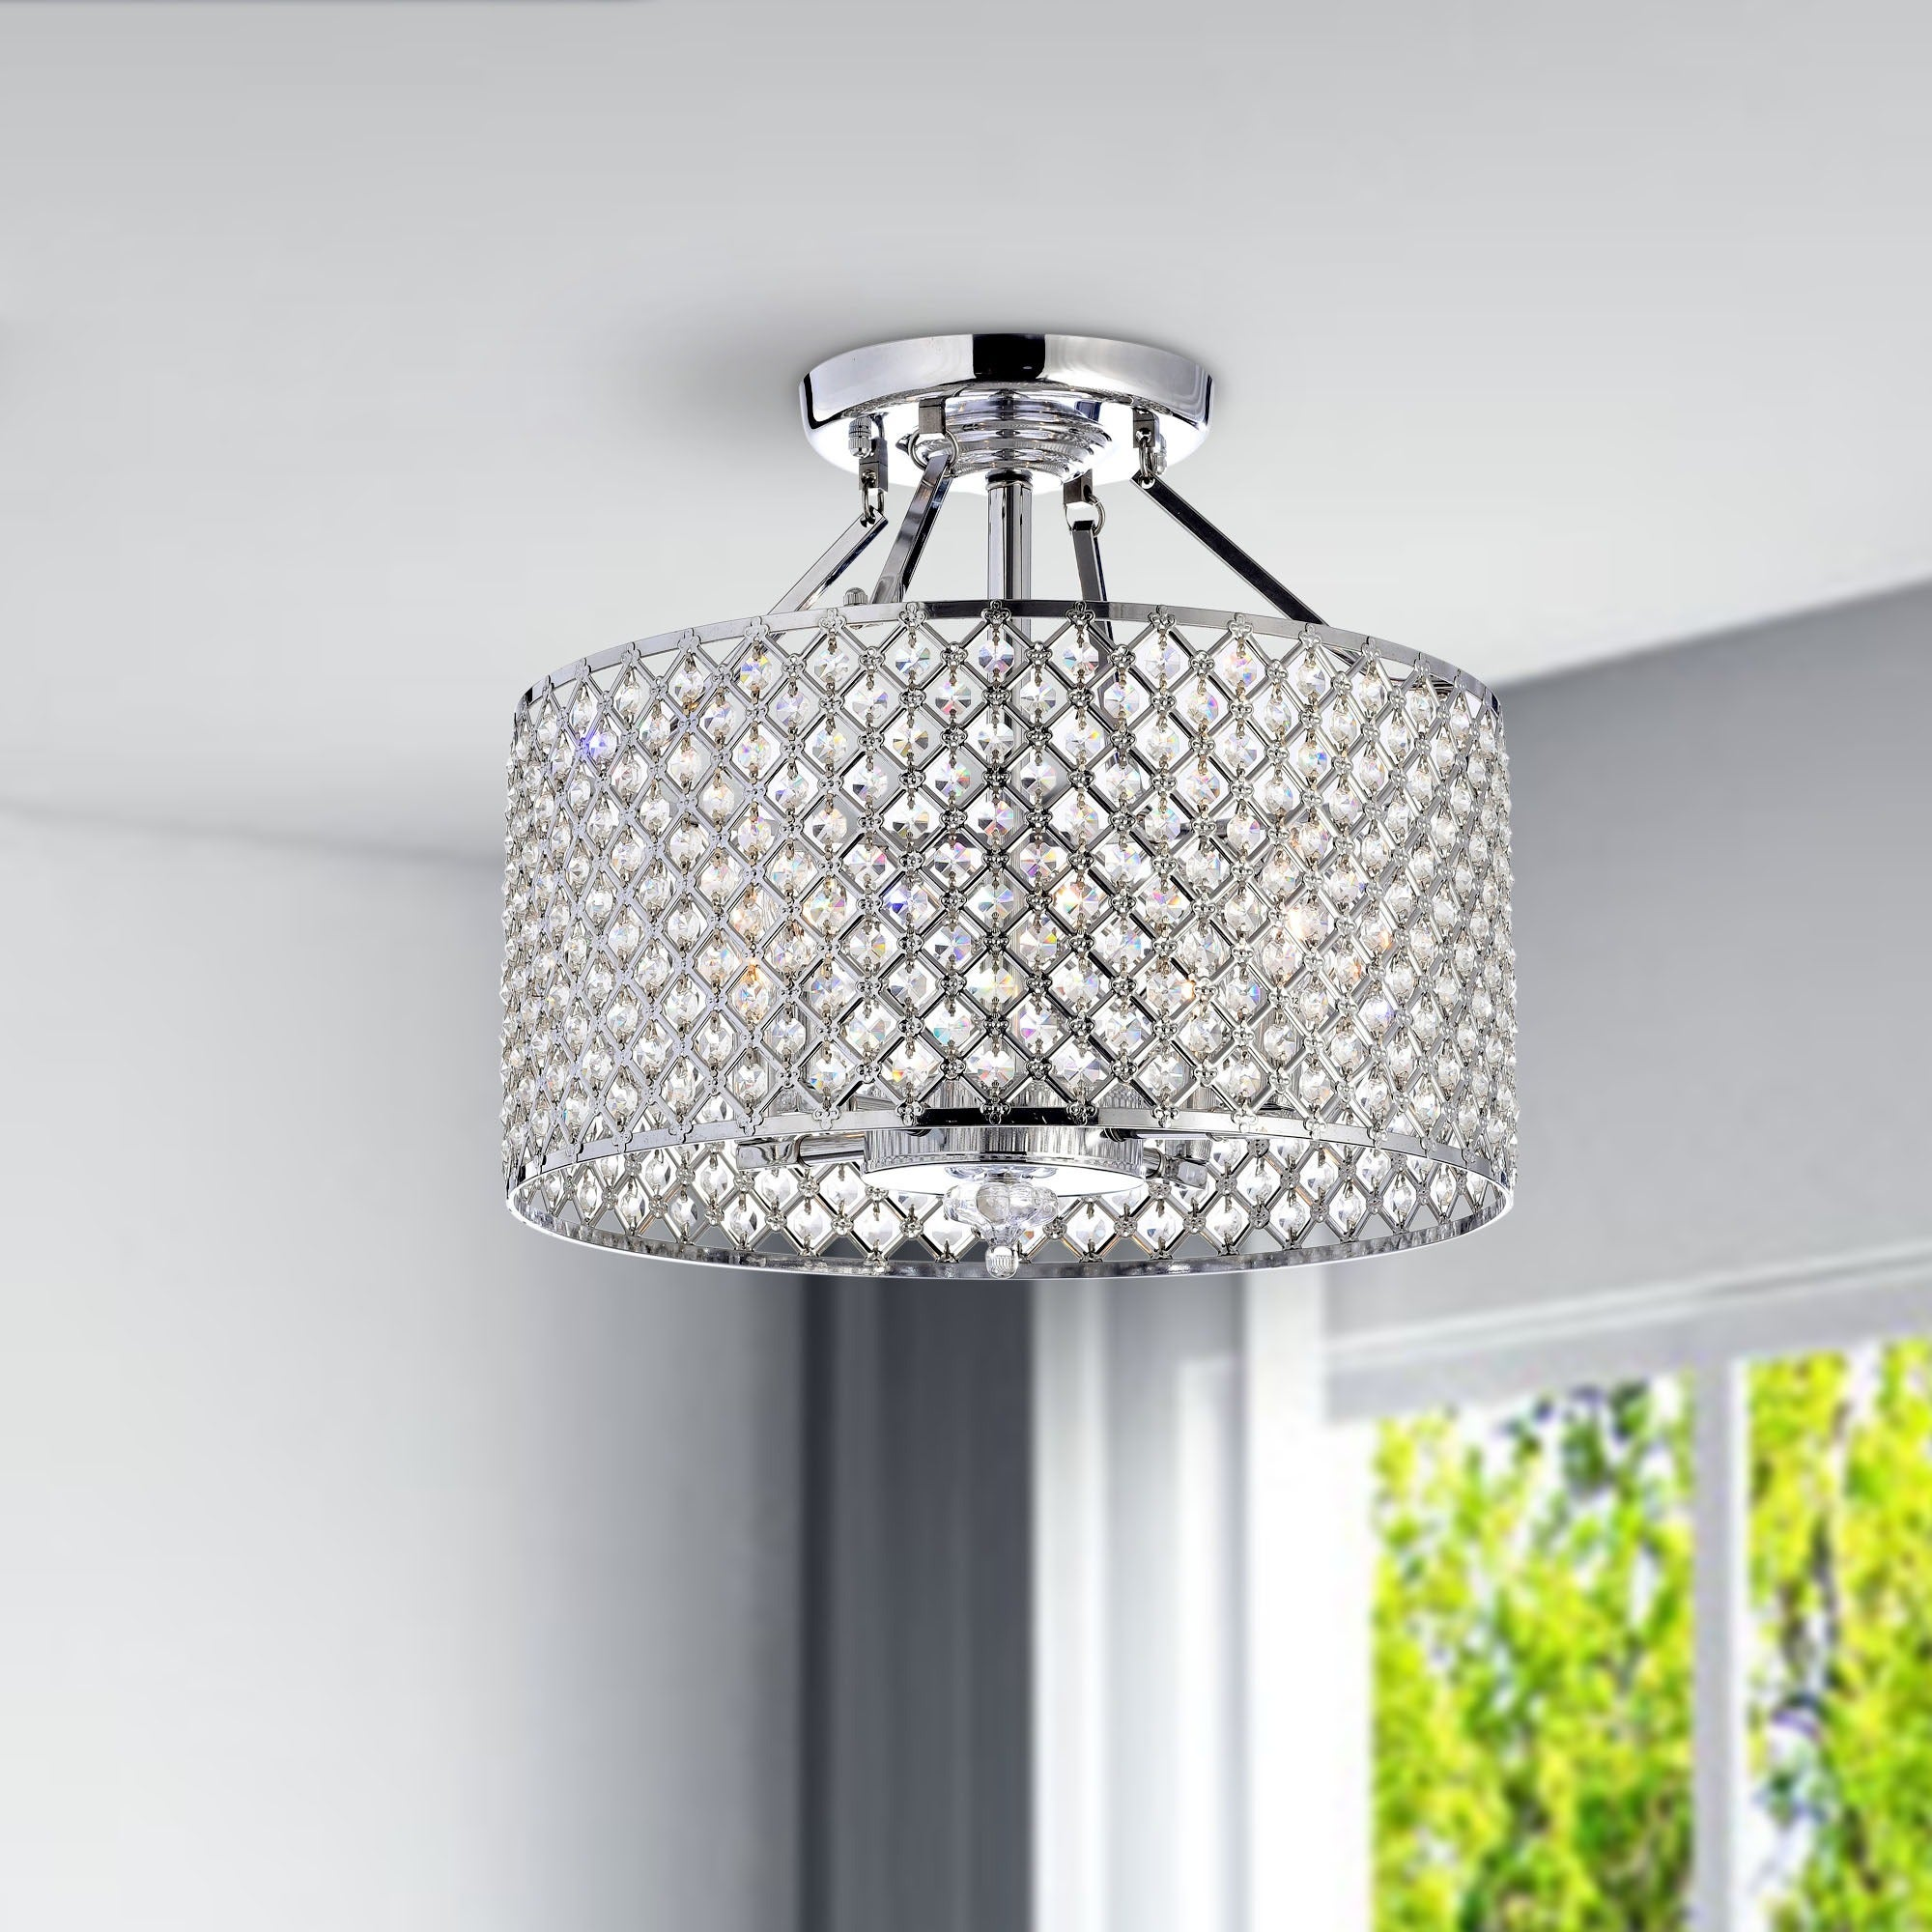 Silver orchid taylor chrome crystal 4 light round ceiling silver orchid taylor chrome crystal 4 light round ceiling chandelier free shipping today overstock 12645622 aloadofball Gallery